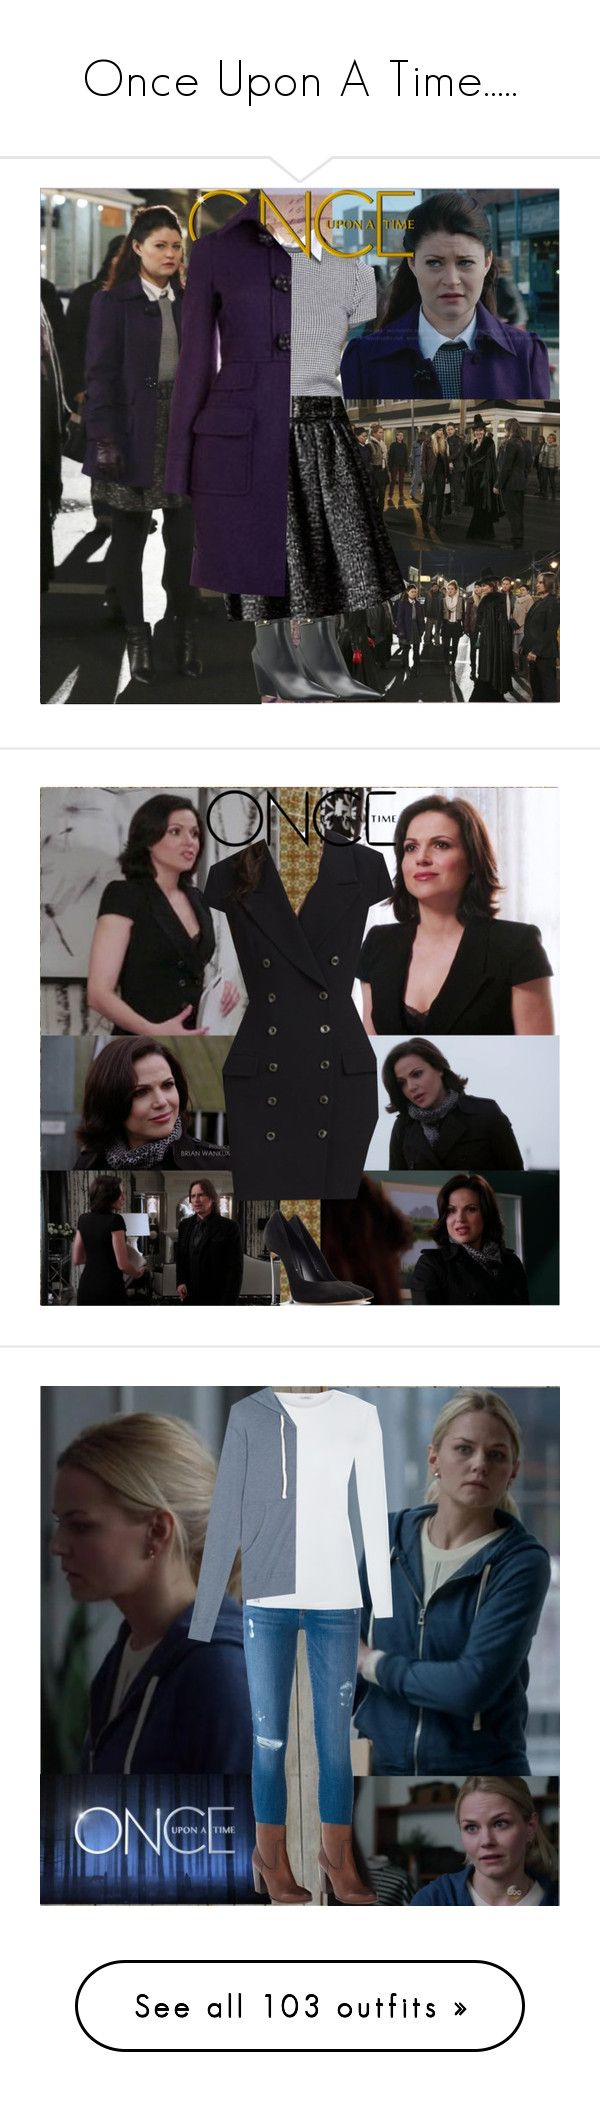 """""""Once Upon A Time....."""" by tvshowobsessed ❤ liked on Polyvore featuring Once Upon a Time, BasicGrey, Casadei, Piet Hein Eek, Frame, Frye, Gianvito Rossi, Wrap, maurices and Agnona"""